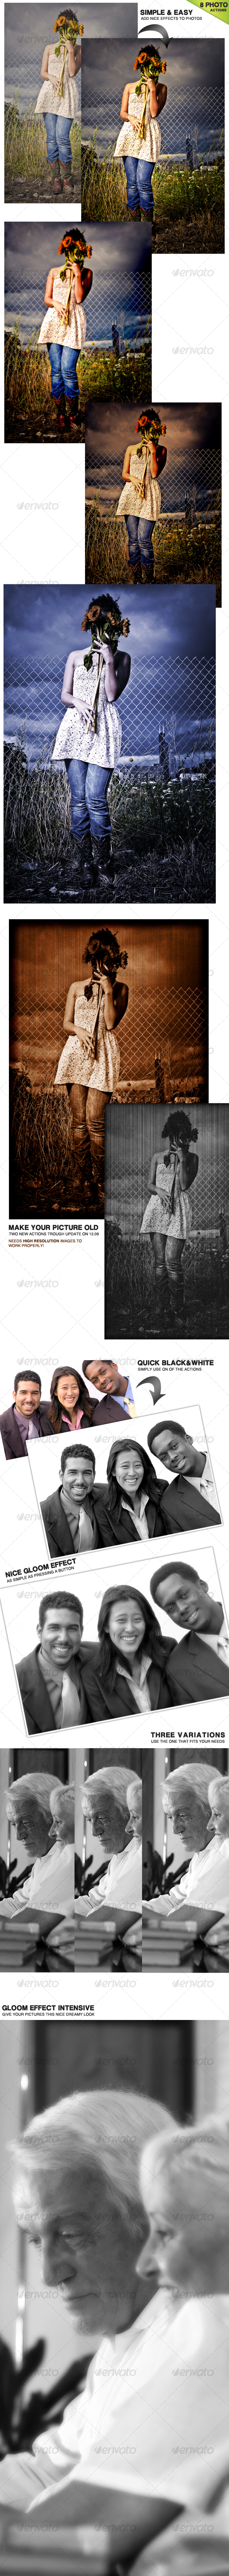 GraphicRiver 6 Photoshop Actions 64901